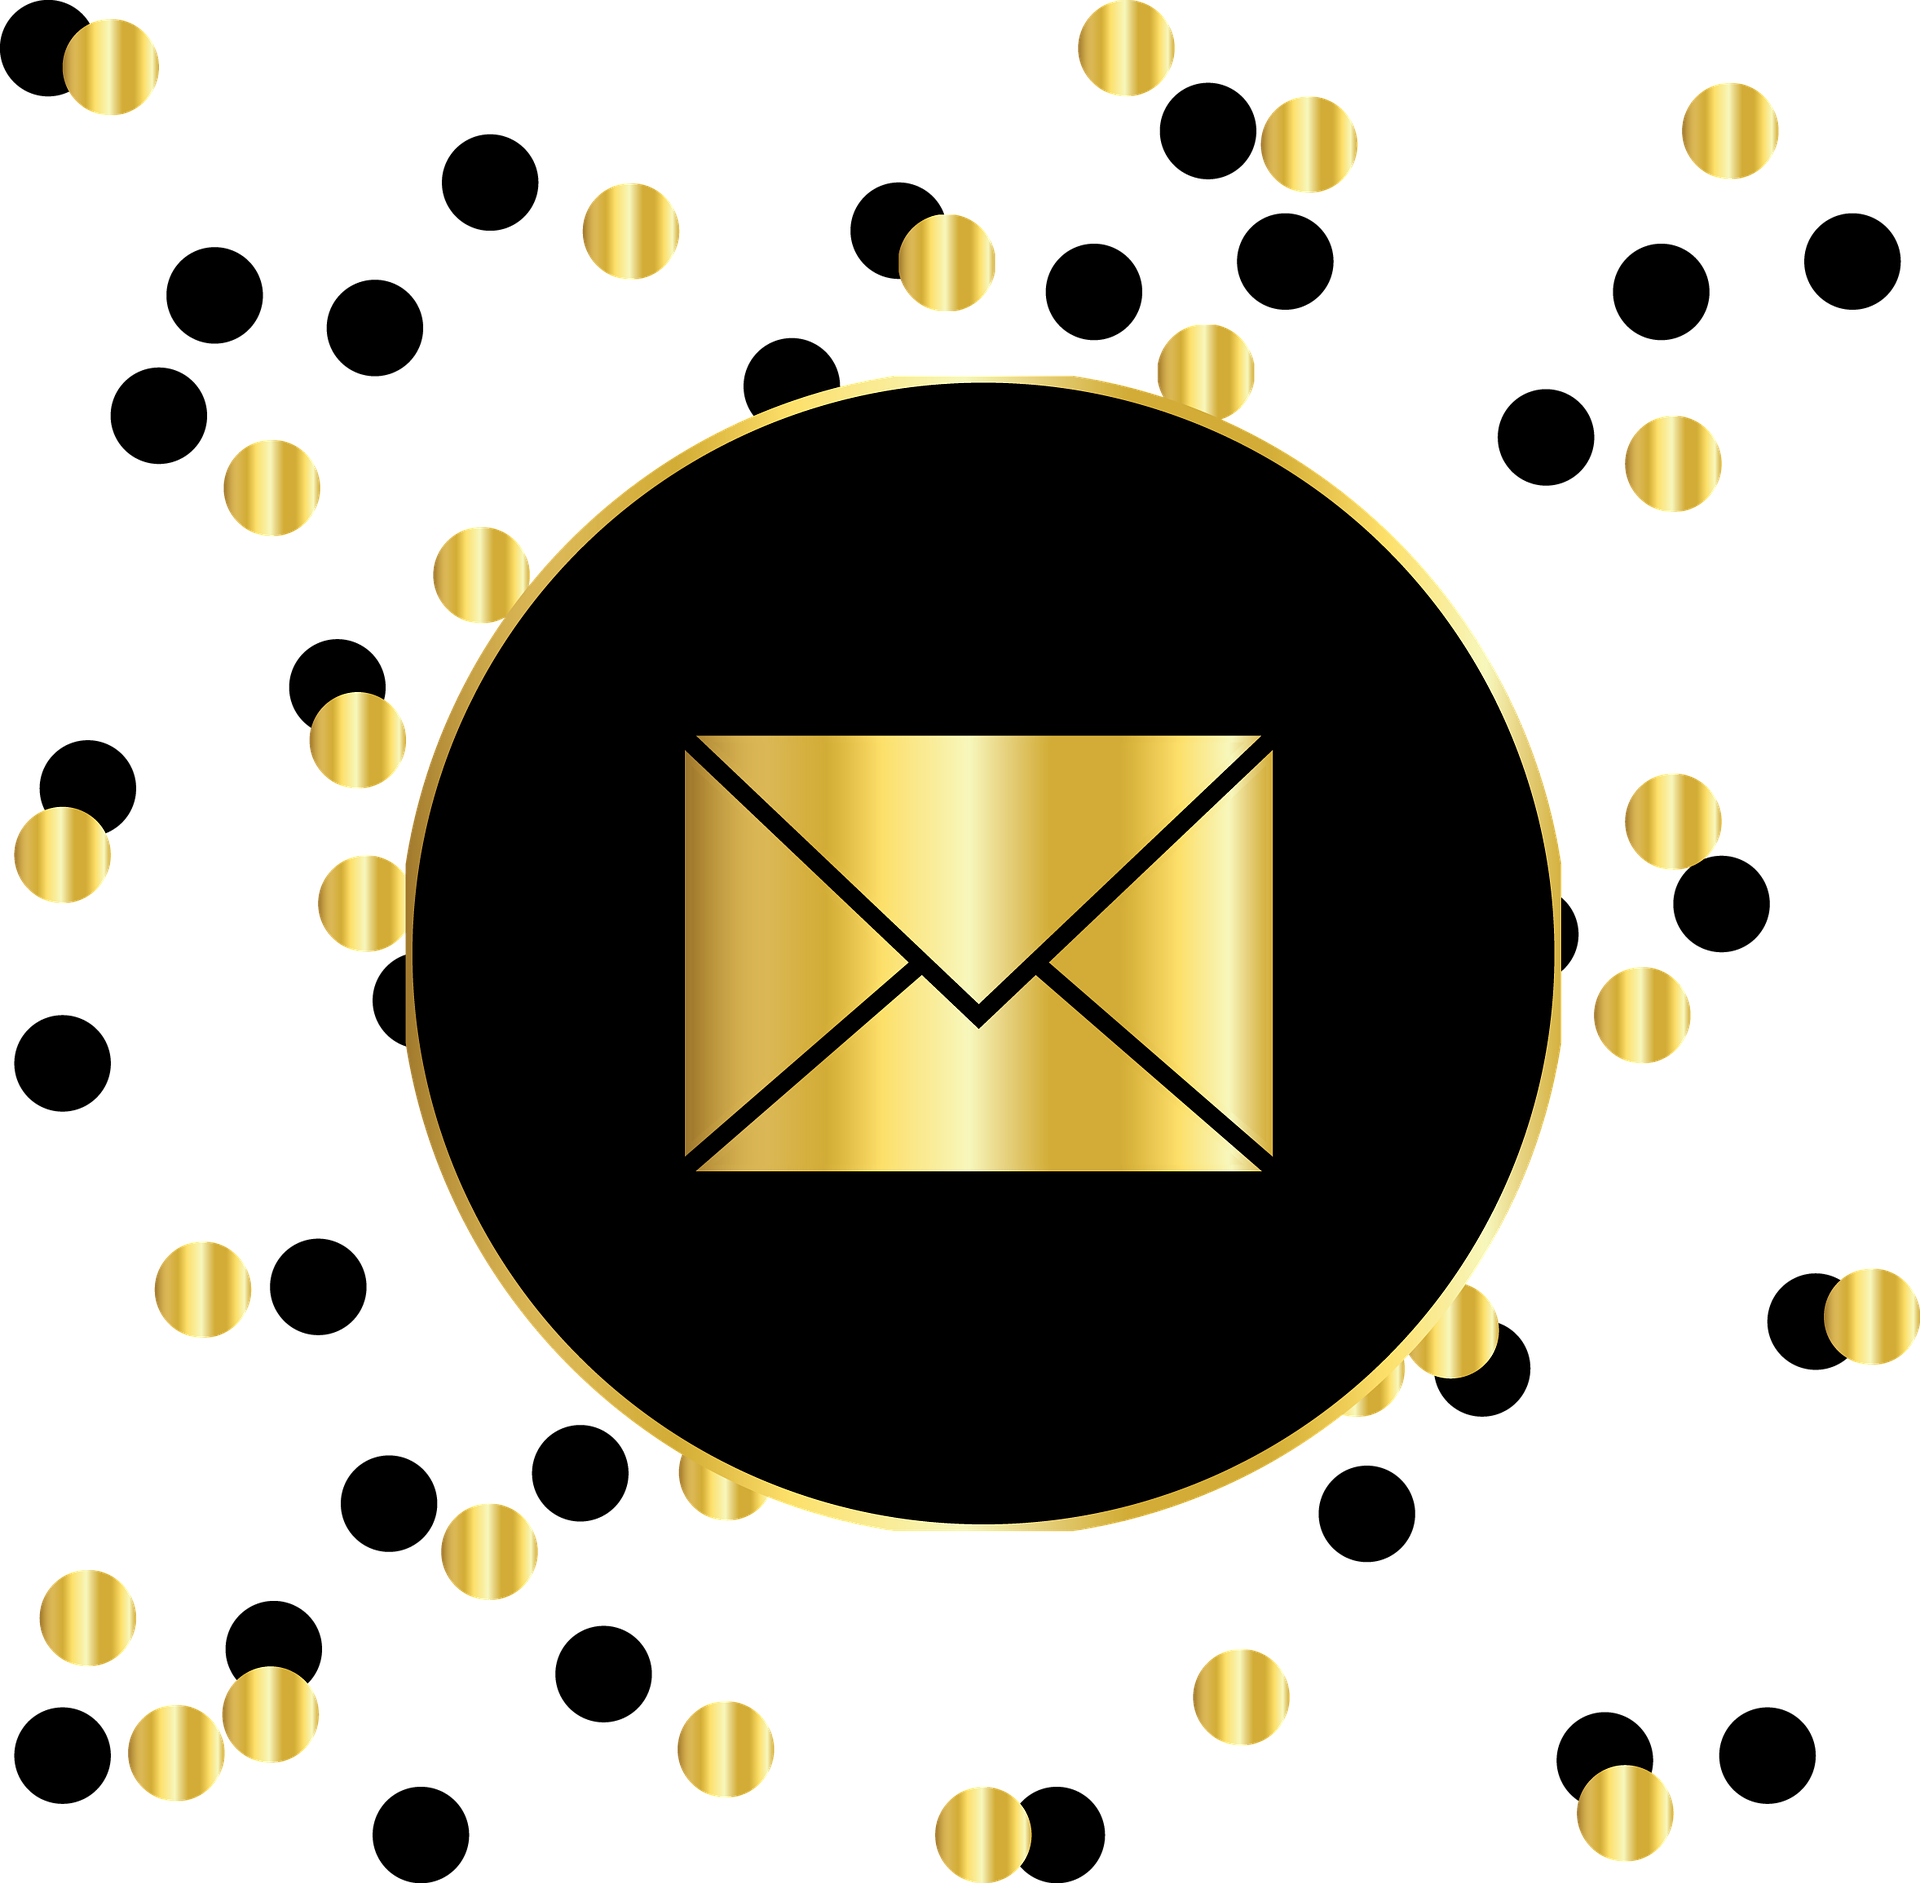 Email Gold And Black Circles - Instagram Logo Black And Gold (1920x1883), Png Download